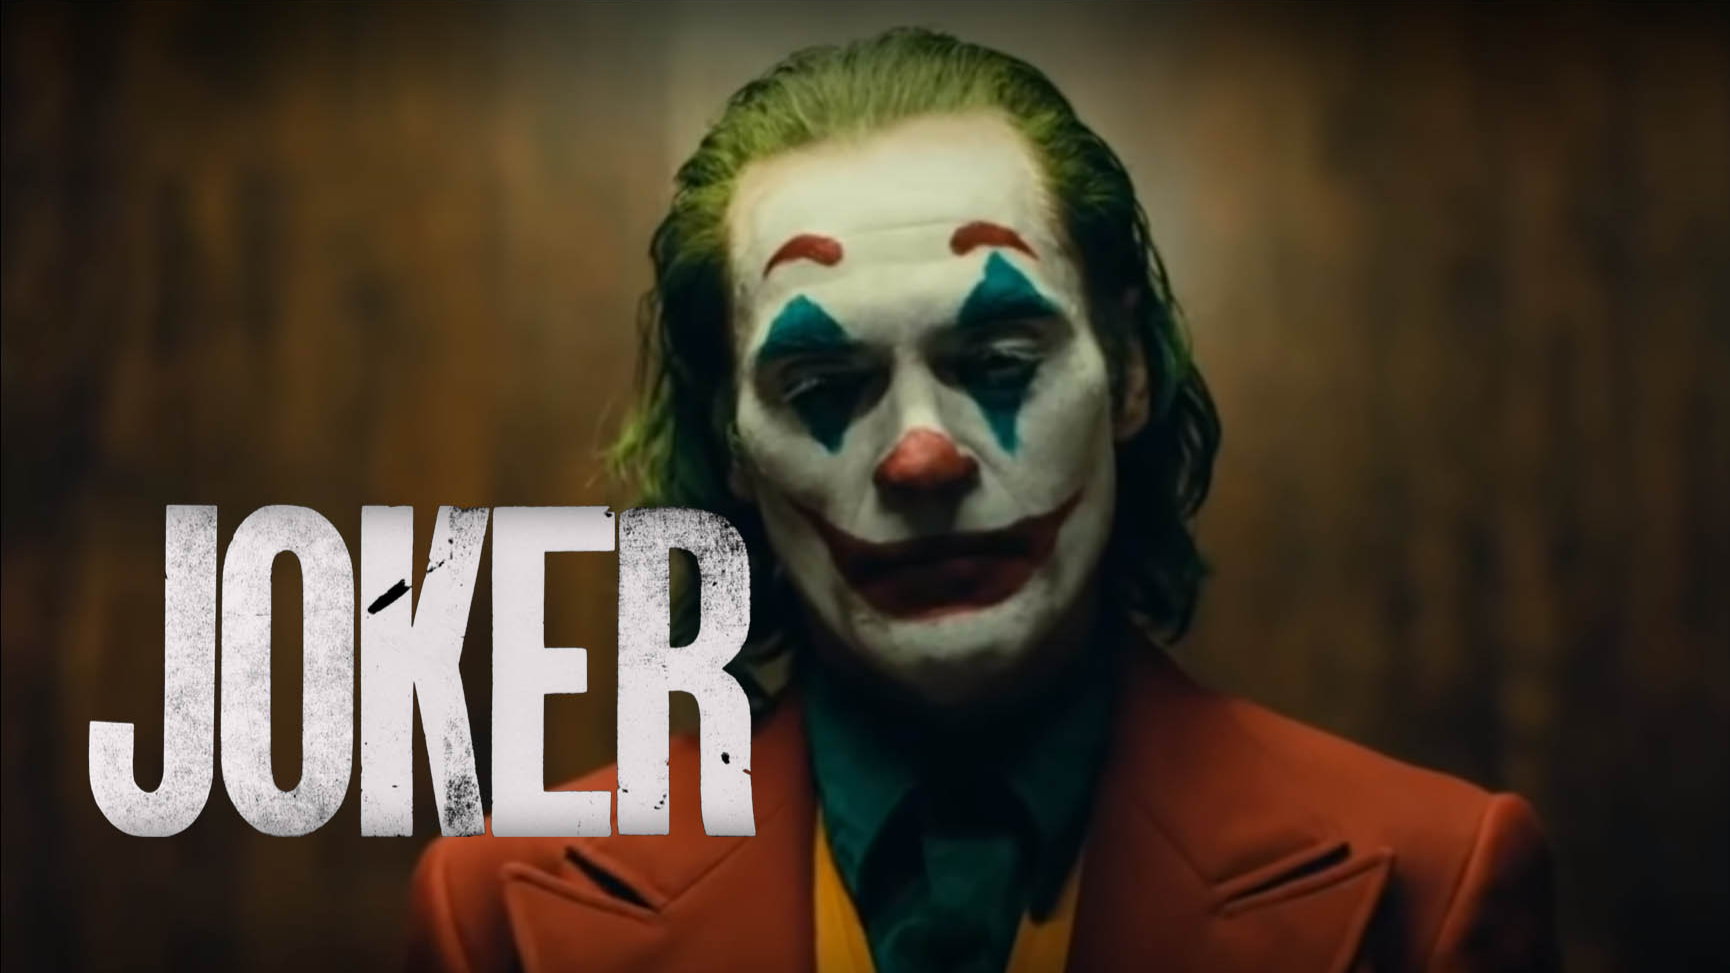 The Joker Movie Release Date In Cinemas Cast And Watch The Trailer Ladbible